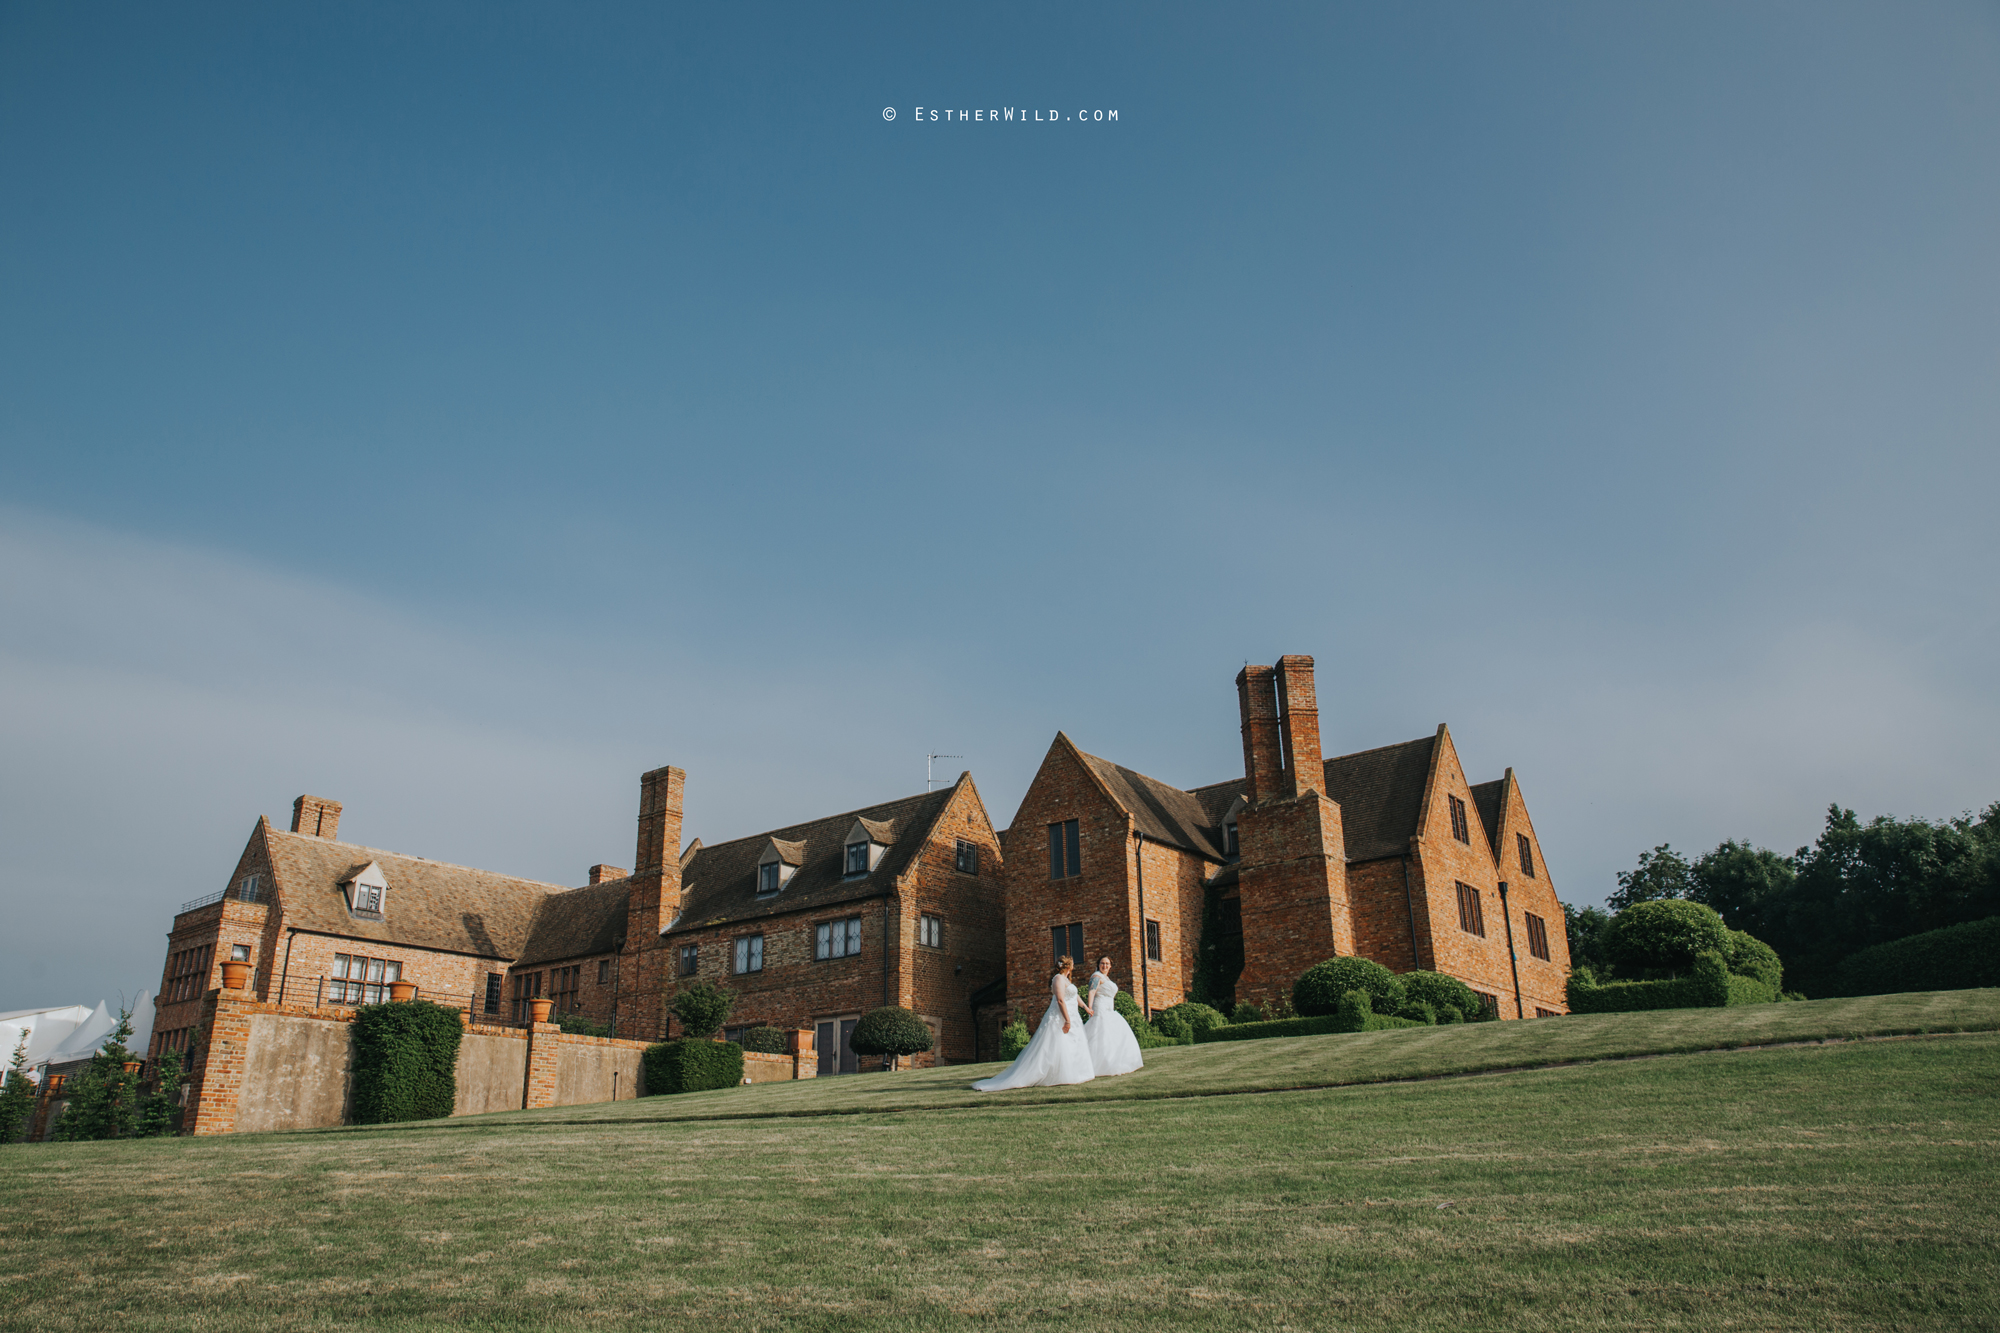 Old_Hall_Ely_Wedding_Esther_Wild_Photographer_IMG_2589.jpg